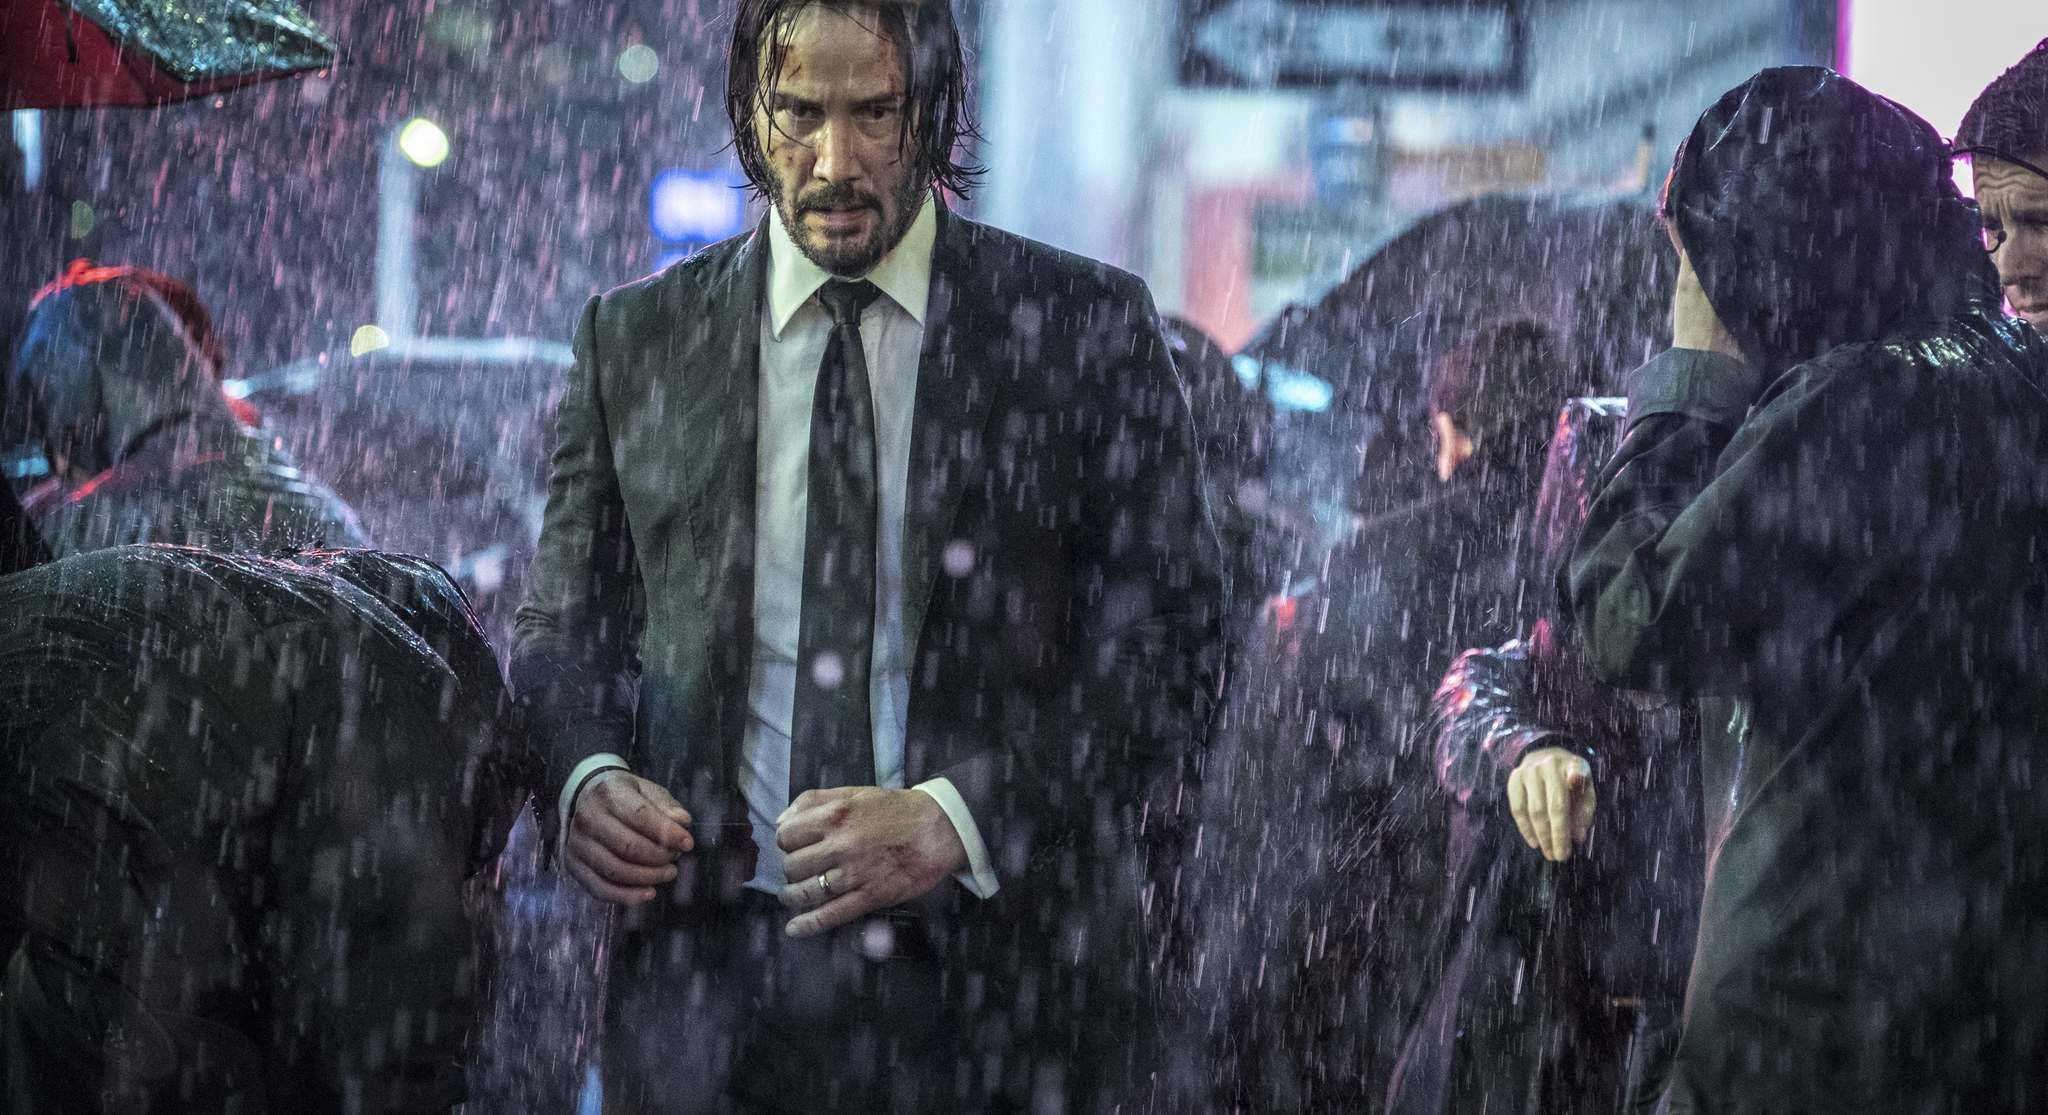 Niko Tavernise / Lionsgate</p><p>Every assassin in the world wants to kill John Wick in the third movie of the action franchise.</p></p>